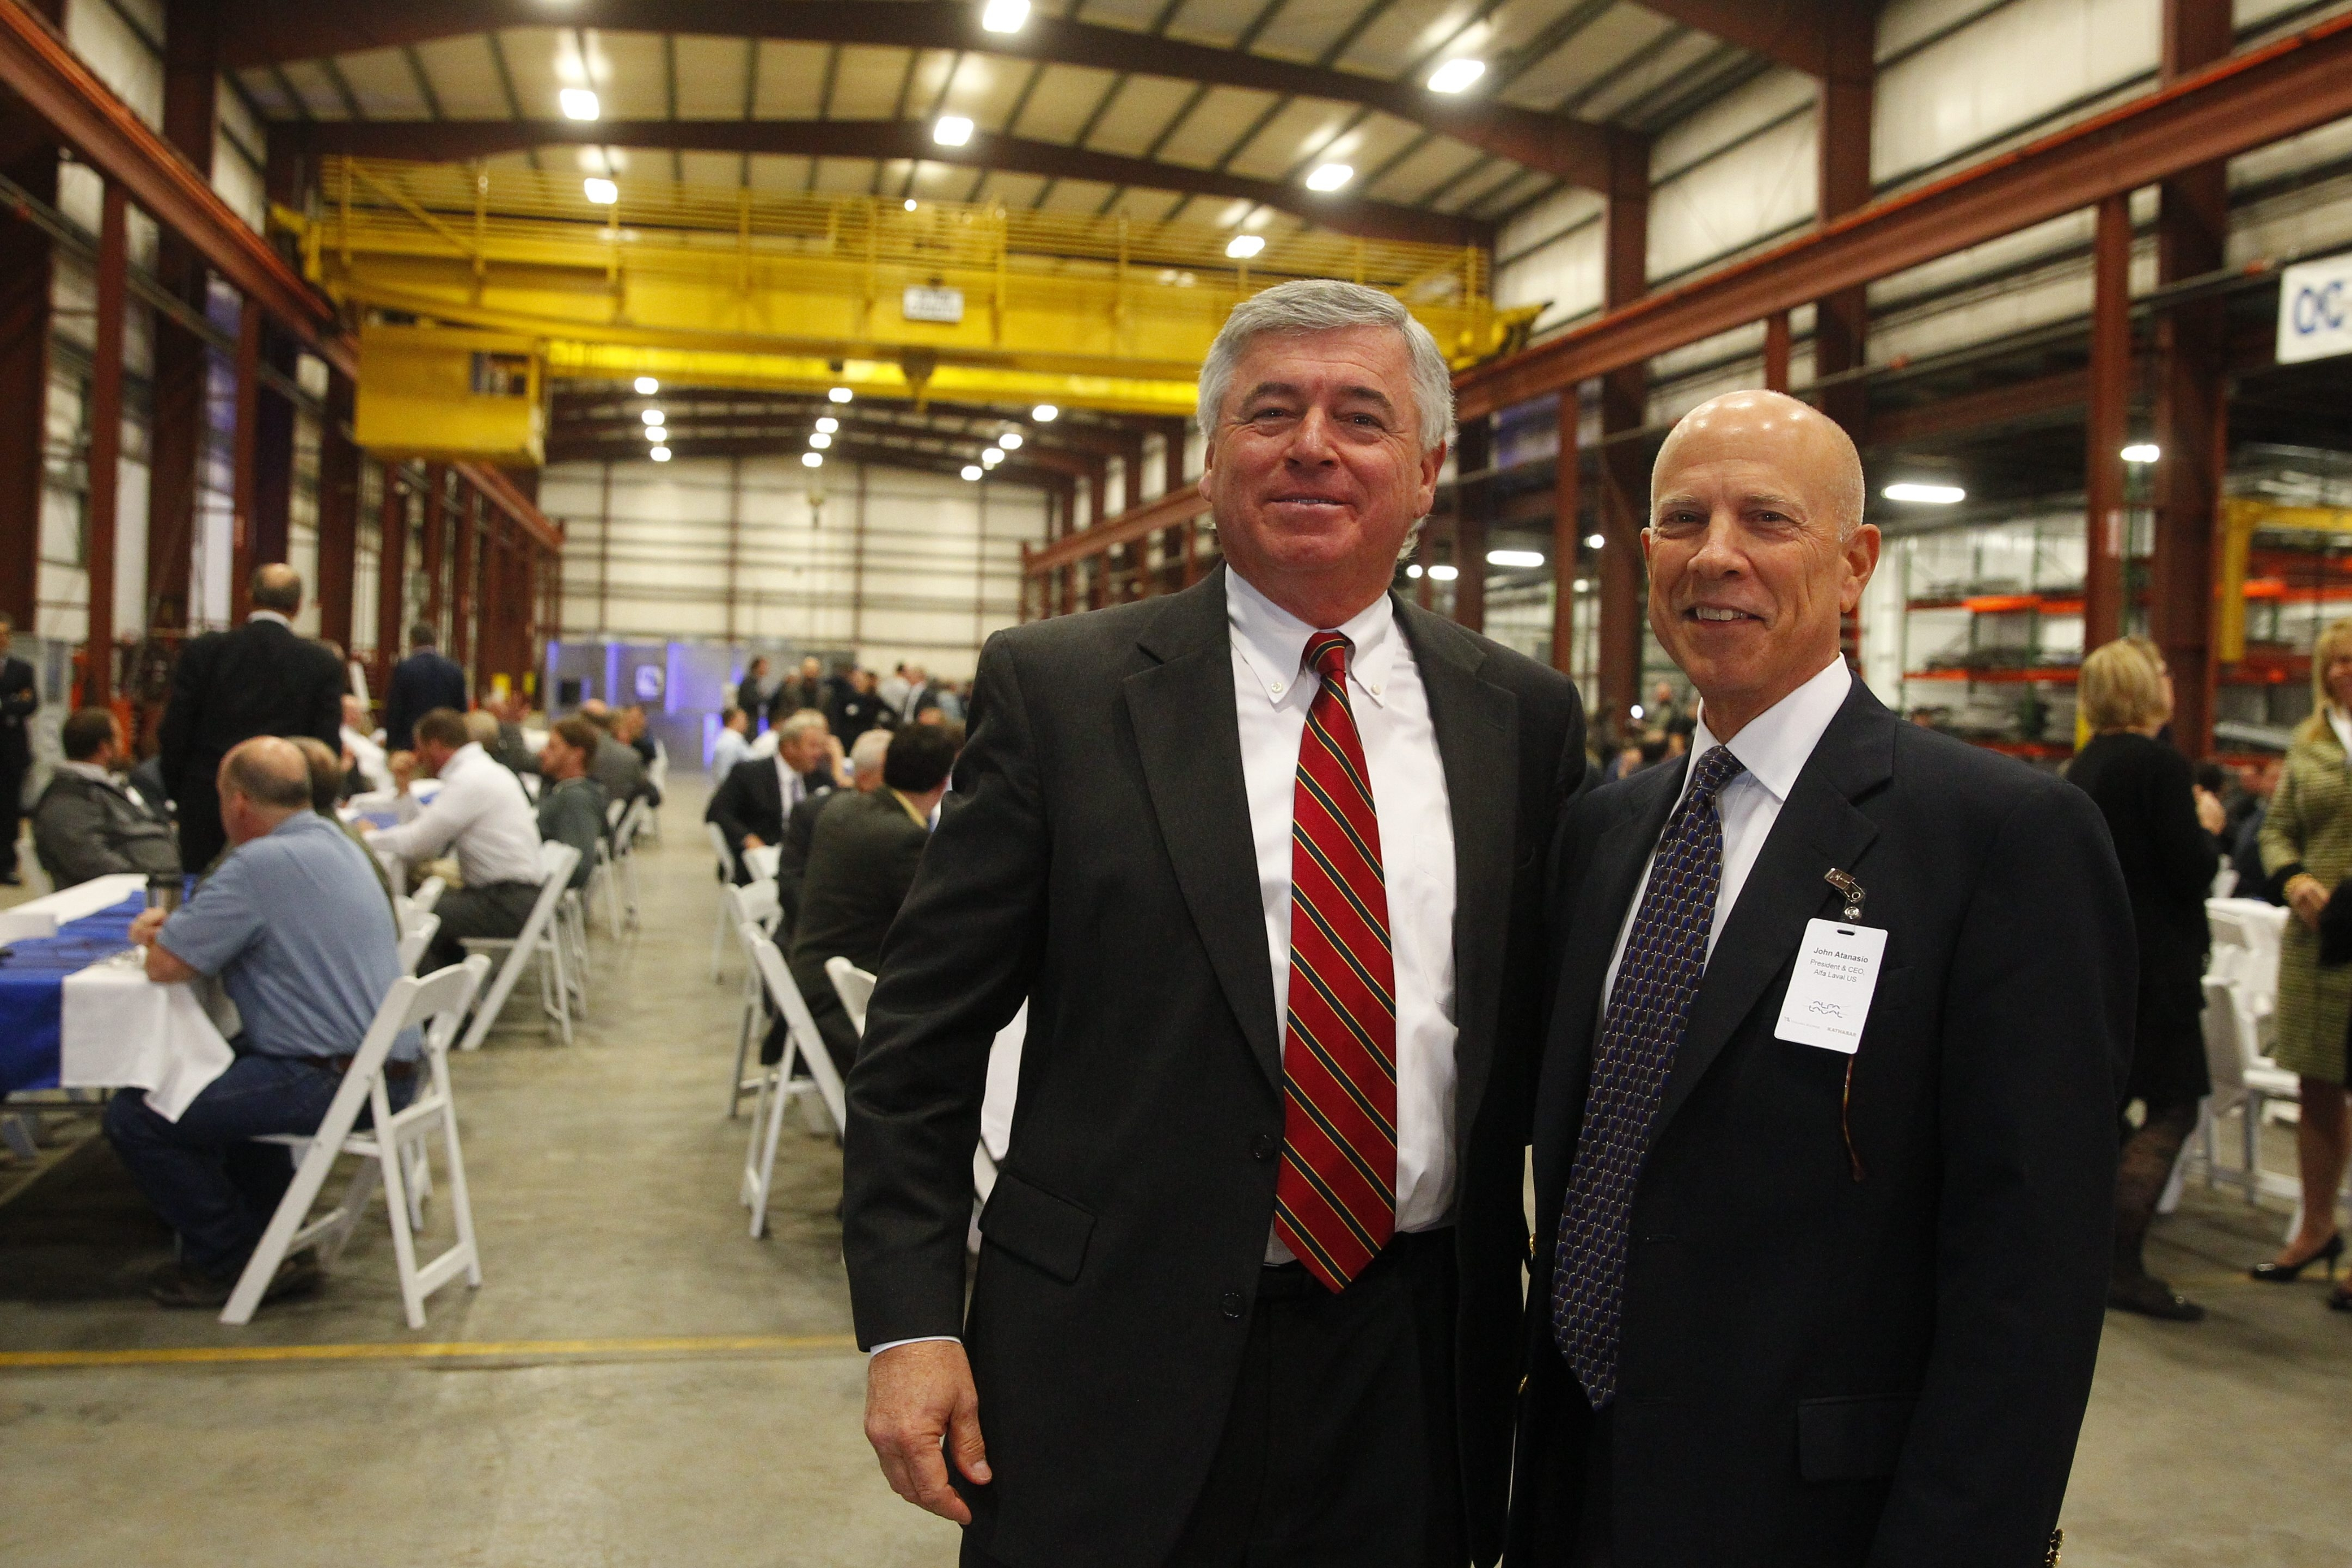 Peter Demakos,left, general manager of Niagara Blower and John Atanasio, president and CEO of Alfa Laval U.S. are bullish about the future of Niagara Blower at its new Town of Tonawanda facility.